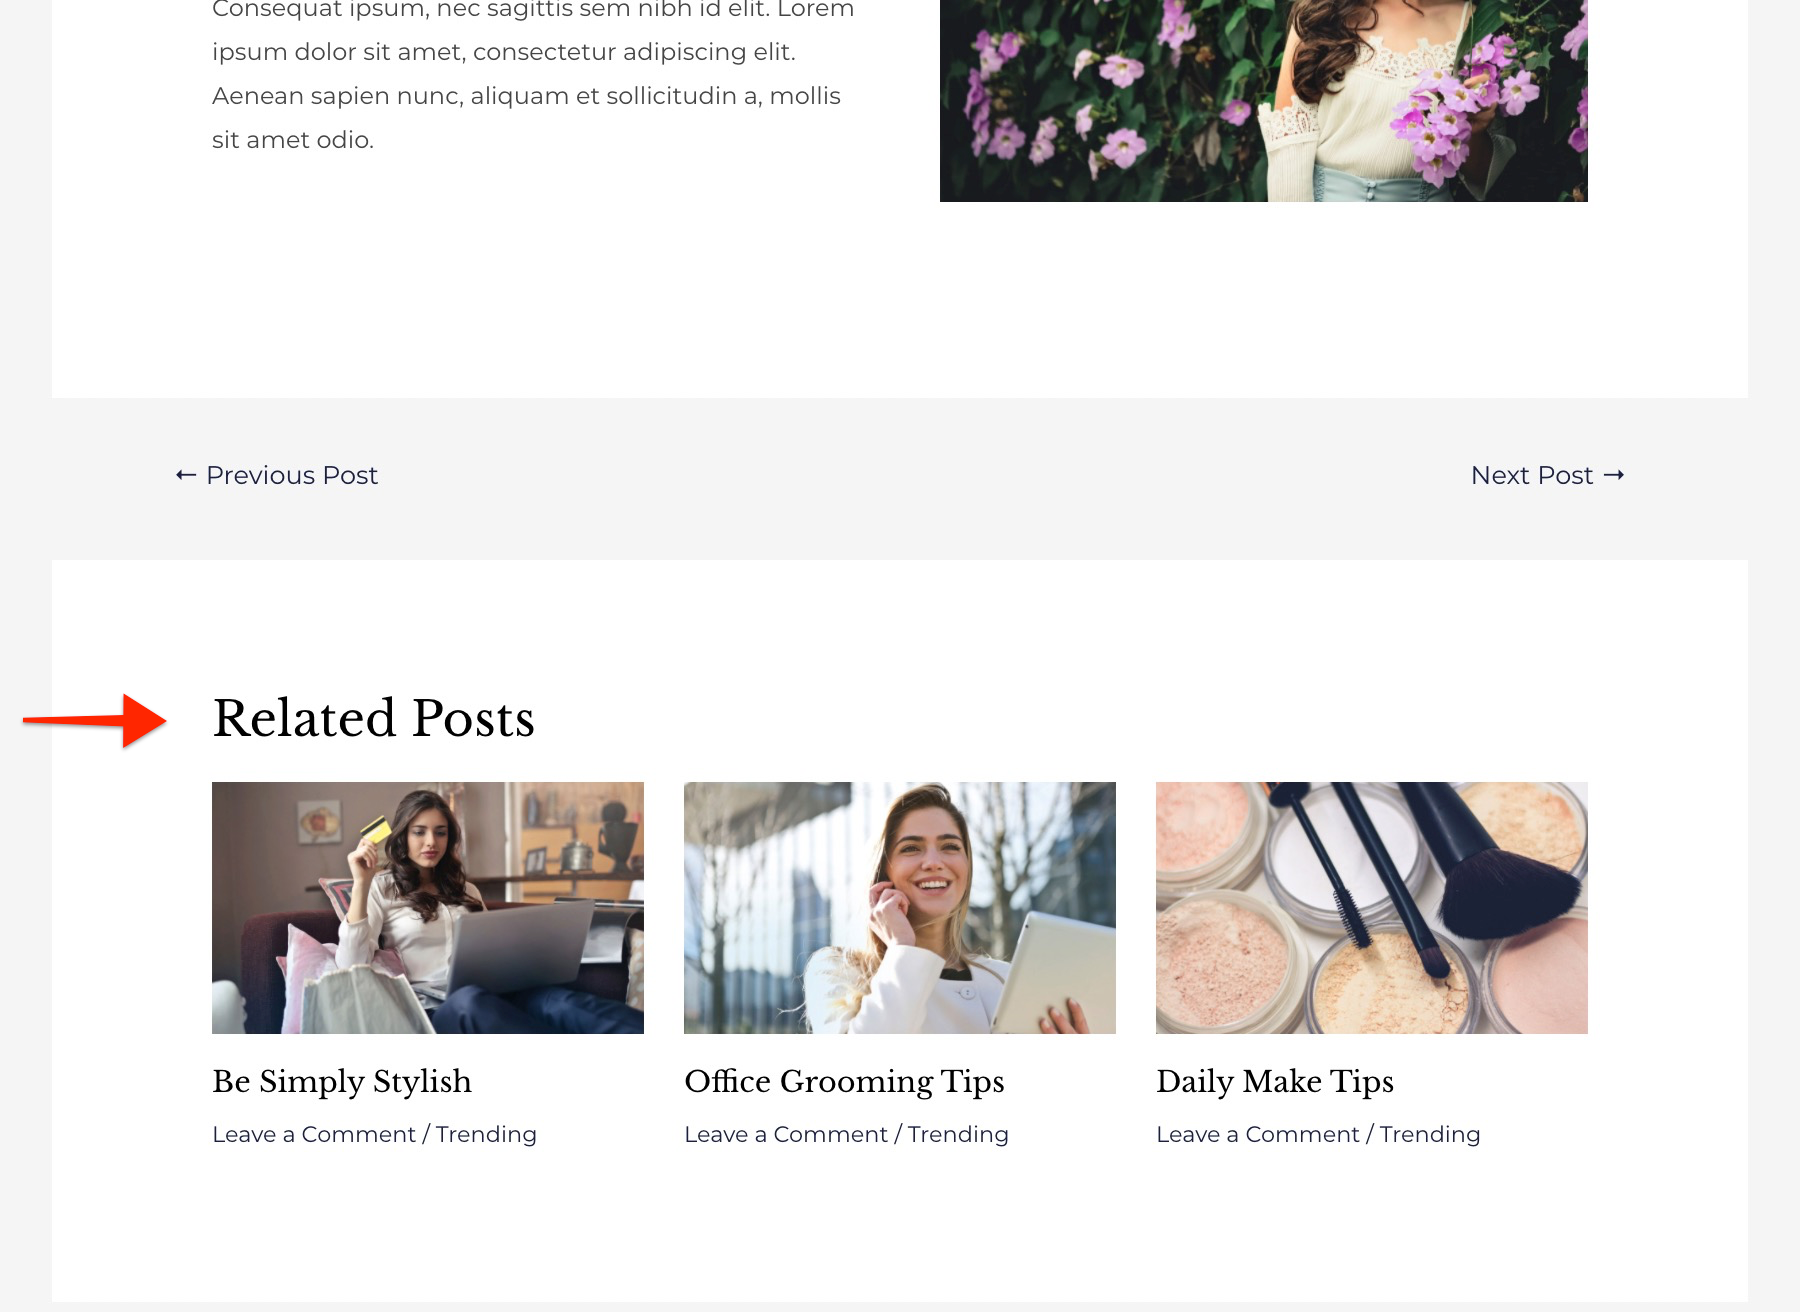 Related Posts on Single Blog